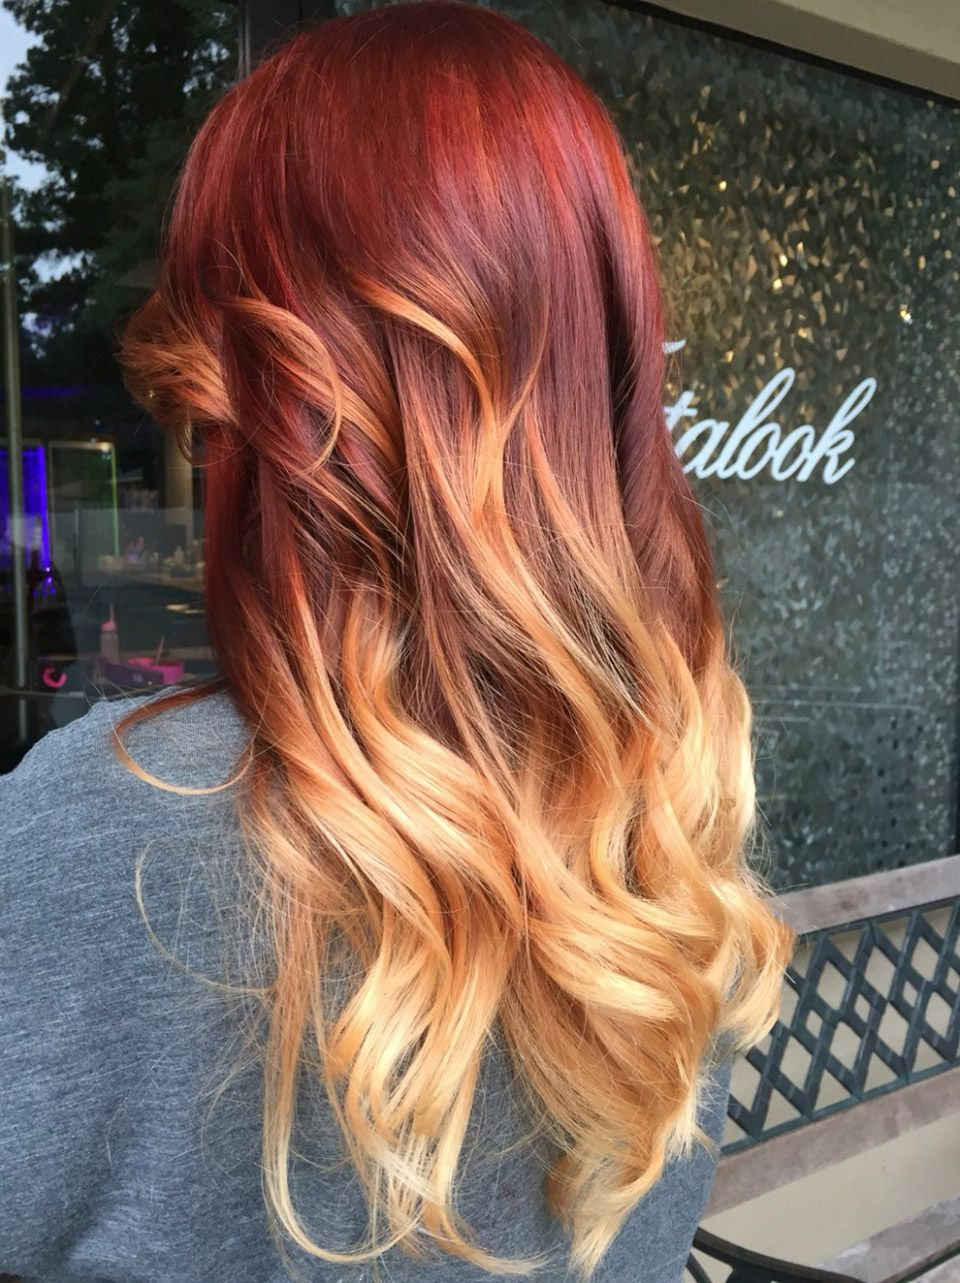 Amazing Red Fire Onbre Hair Color Ideas  in   Χτενίσματα